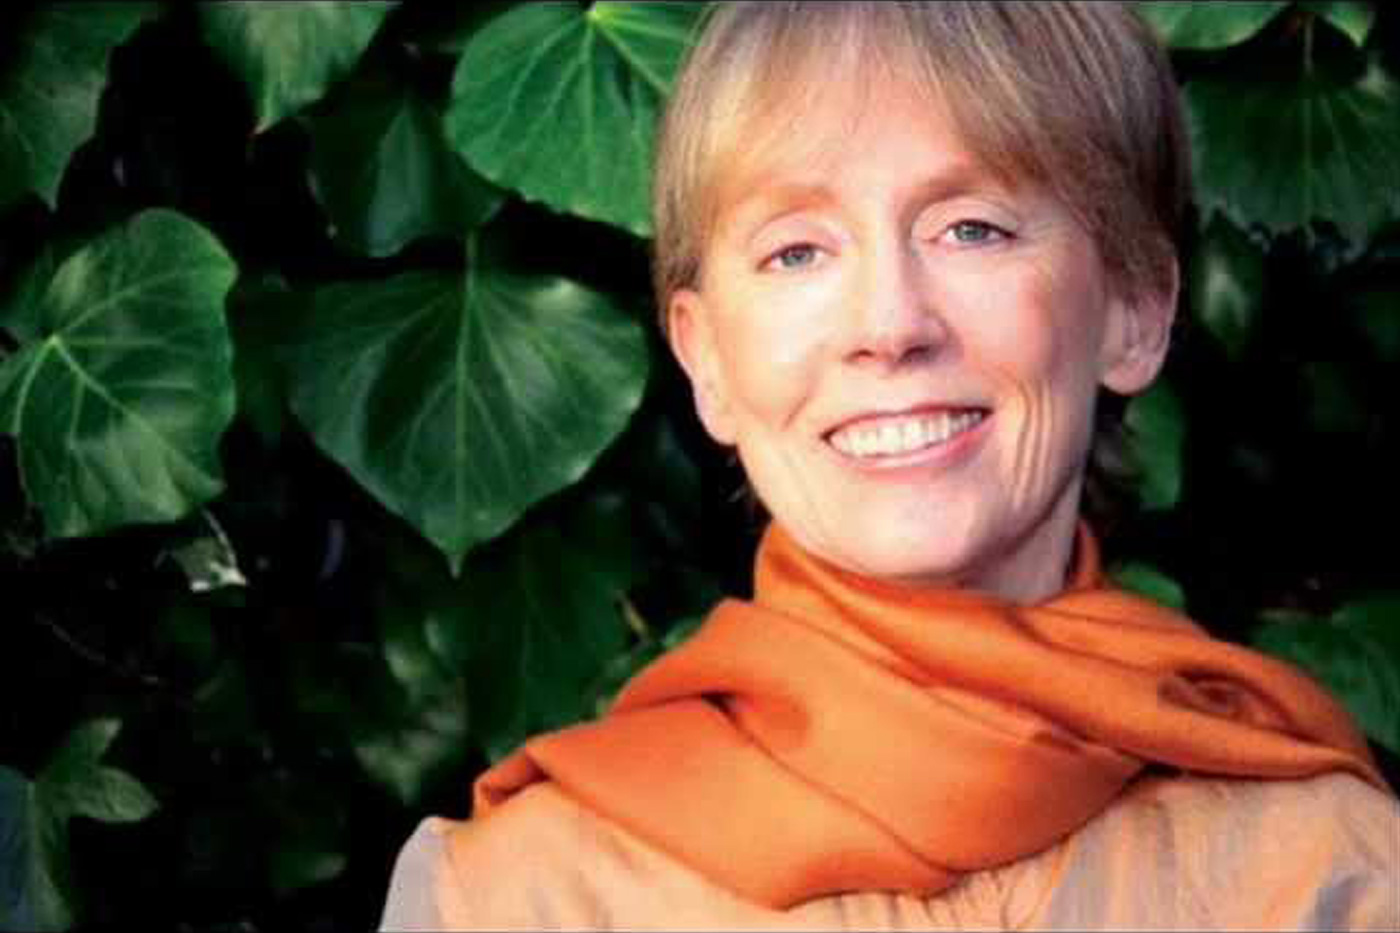 "SALLY KEMPTON   Sally Kempton is a widely respected teacher of meditation and spiritual wisdom known to help students work with meditative experience as a framework for practical life-change. A former swami in a Vedic tradition, she has spent over four decades delving deeply into meditation and self-inquiry.  Spirituality and Health  magazine call her work ""the meditation books your heart wants you to read."" She is on the faculty at Esalen and Kripalu, teaches meditation on Yogaglo & leads international retreats.   www.sallykempton.com"